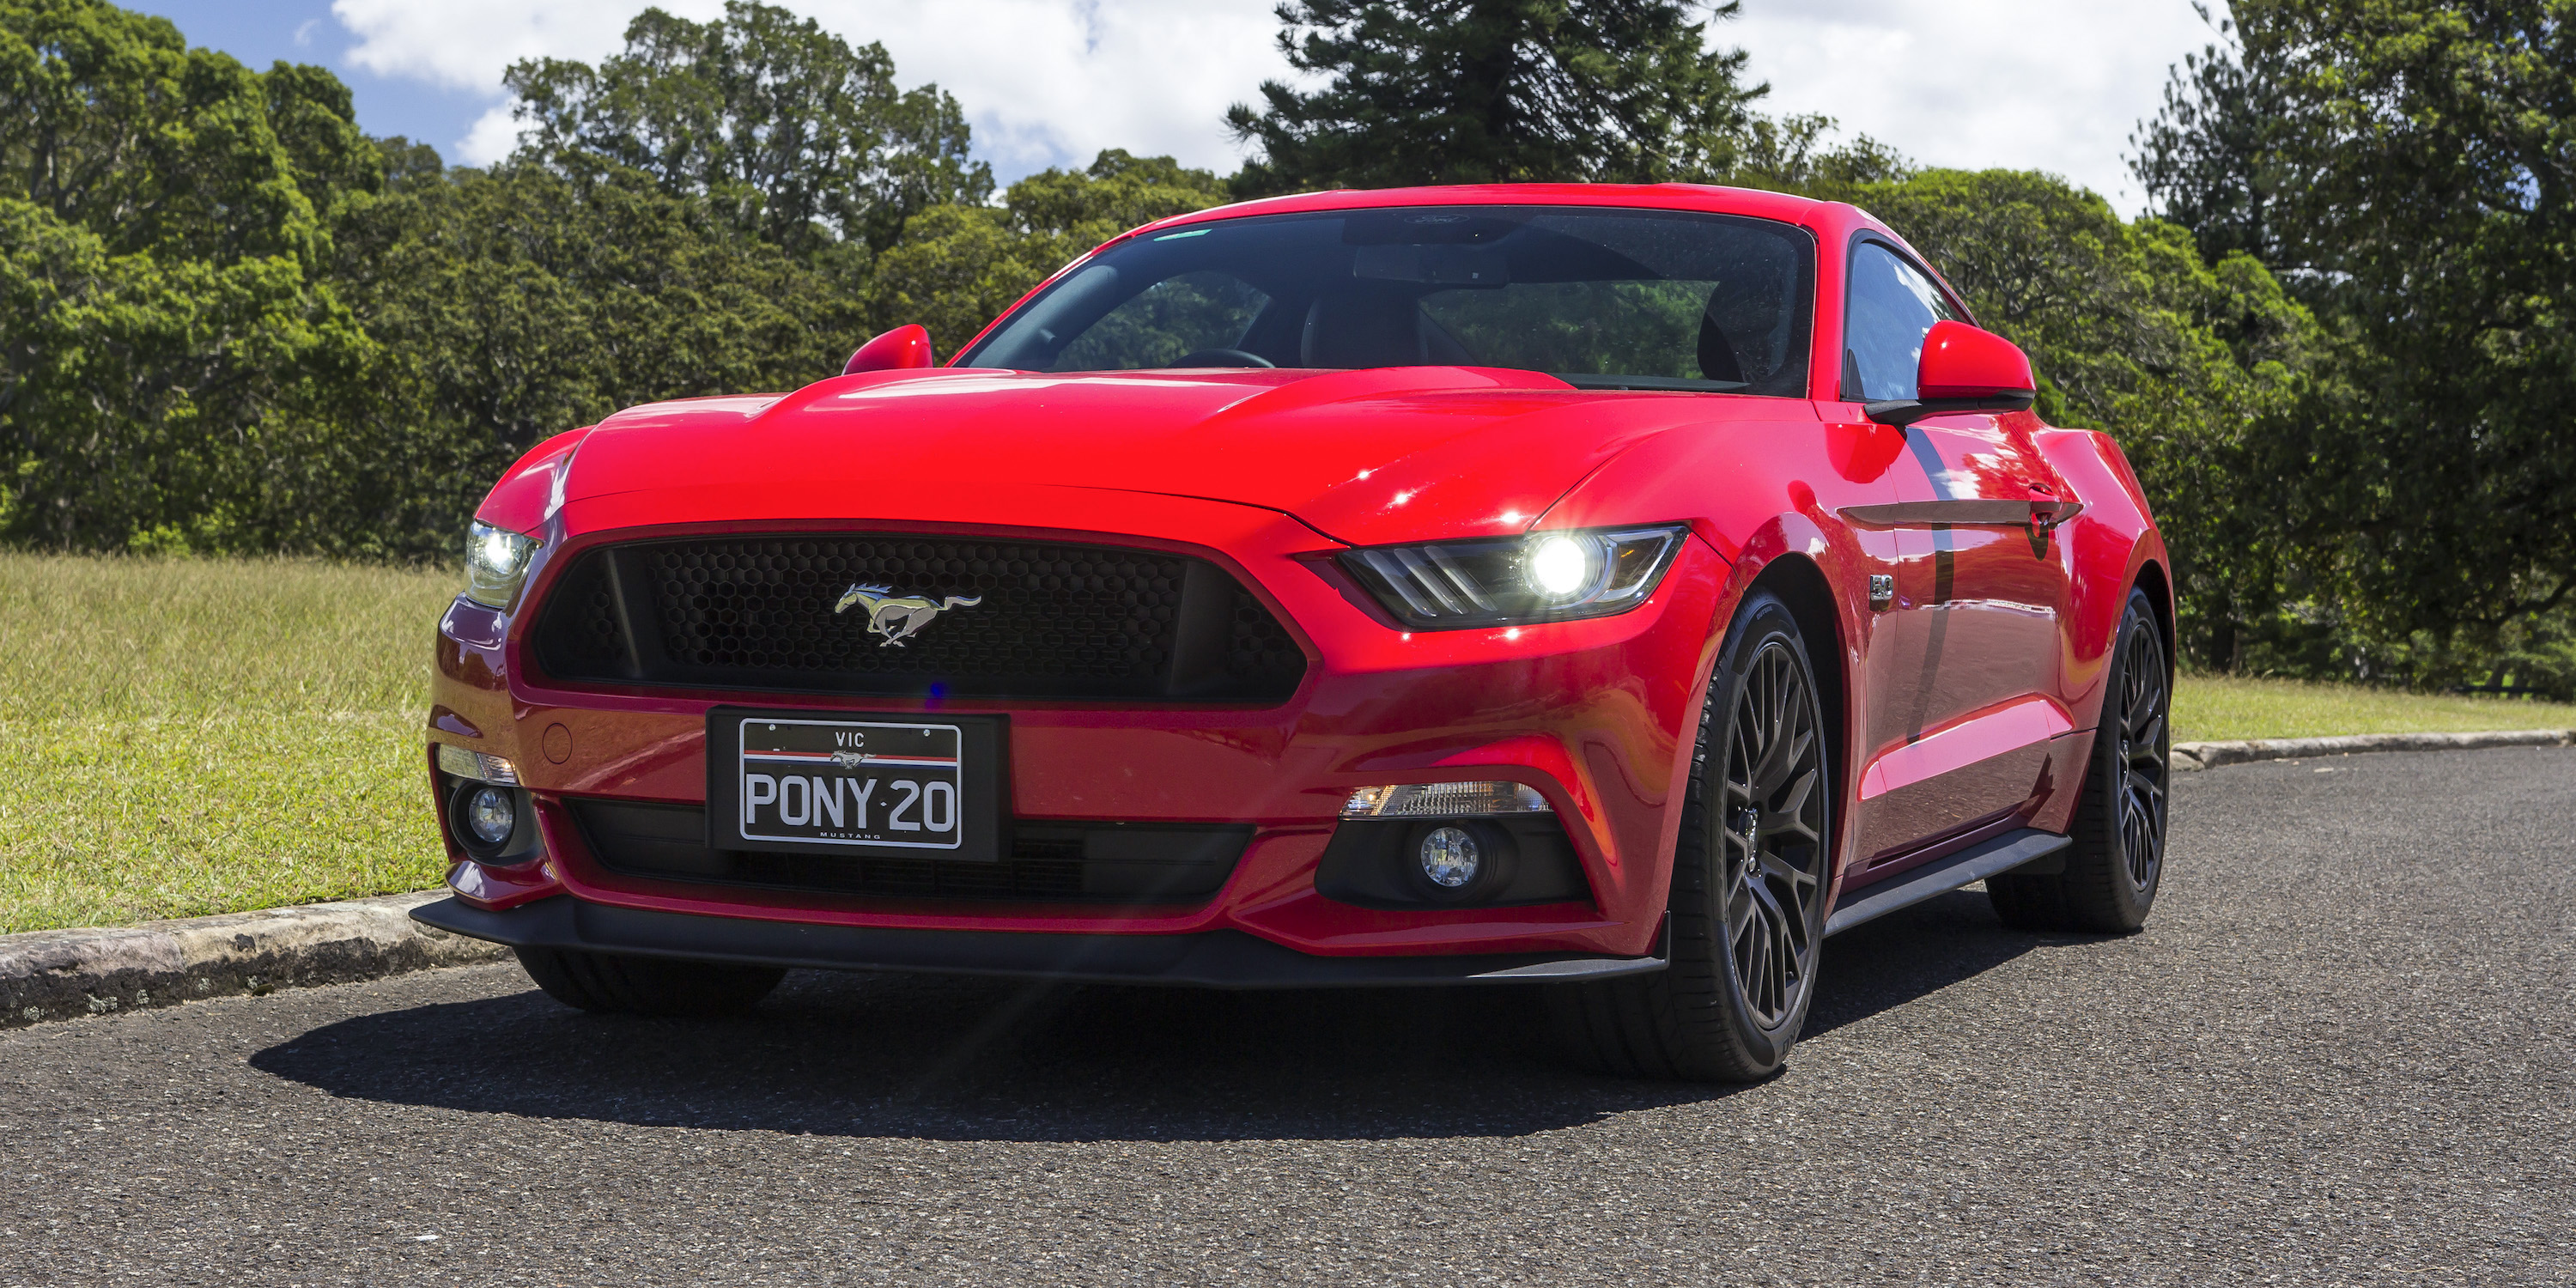 Cool 2016 Ford Mustang GT Review  CarAdvice